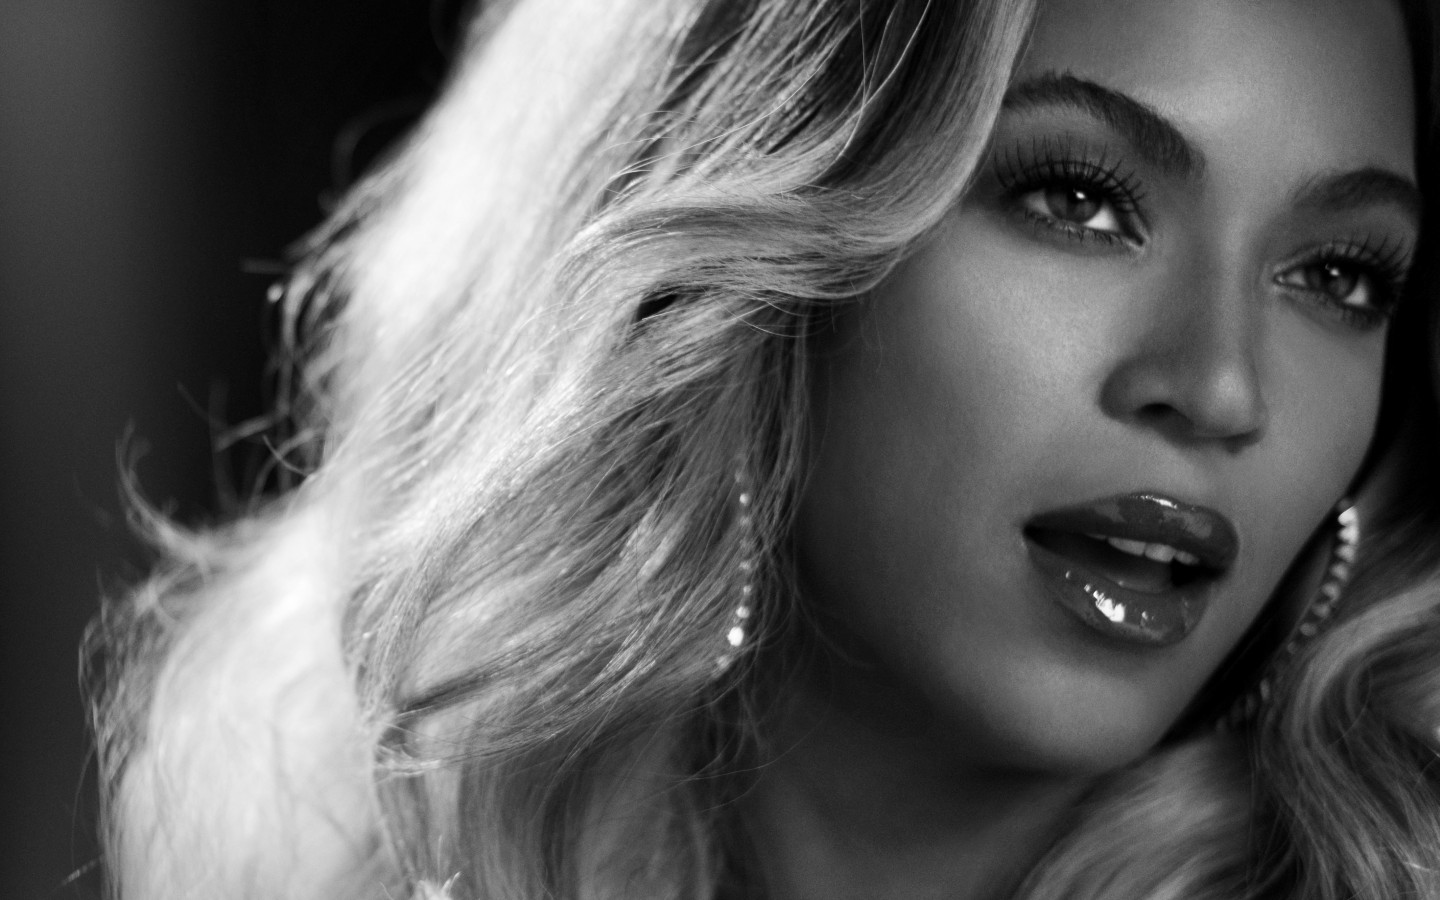 Beyonce in Black & White Wallpaper for Desktop 1440x900